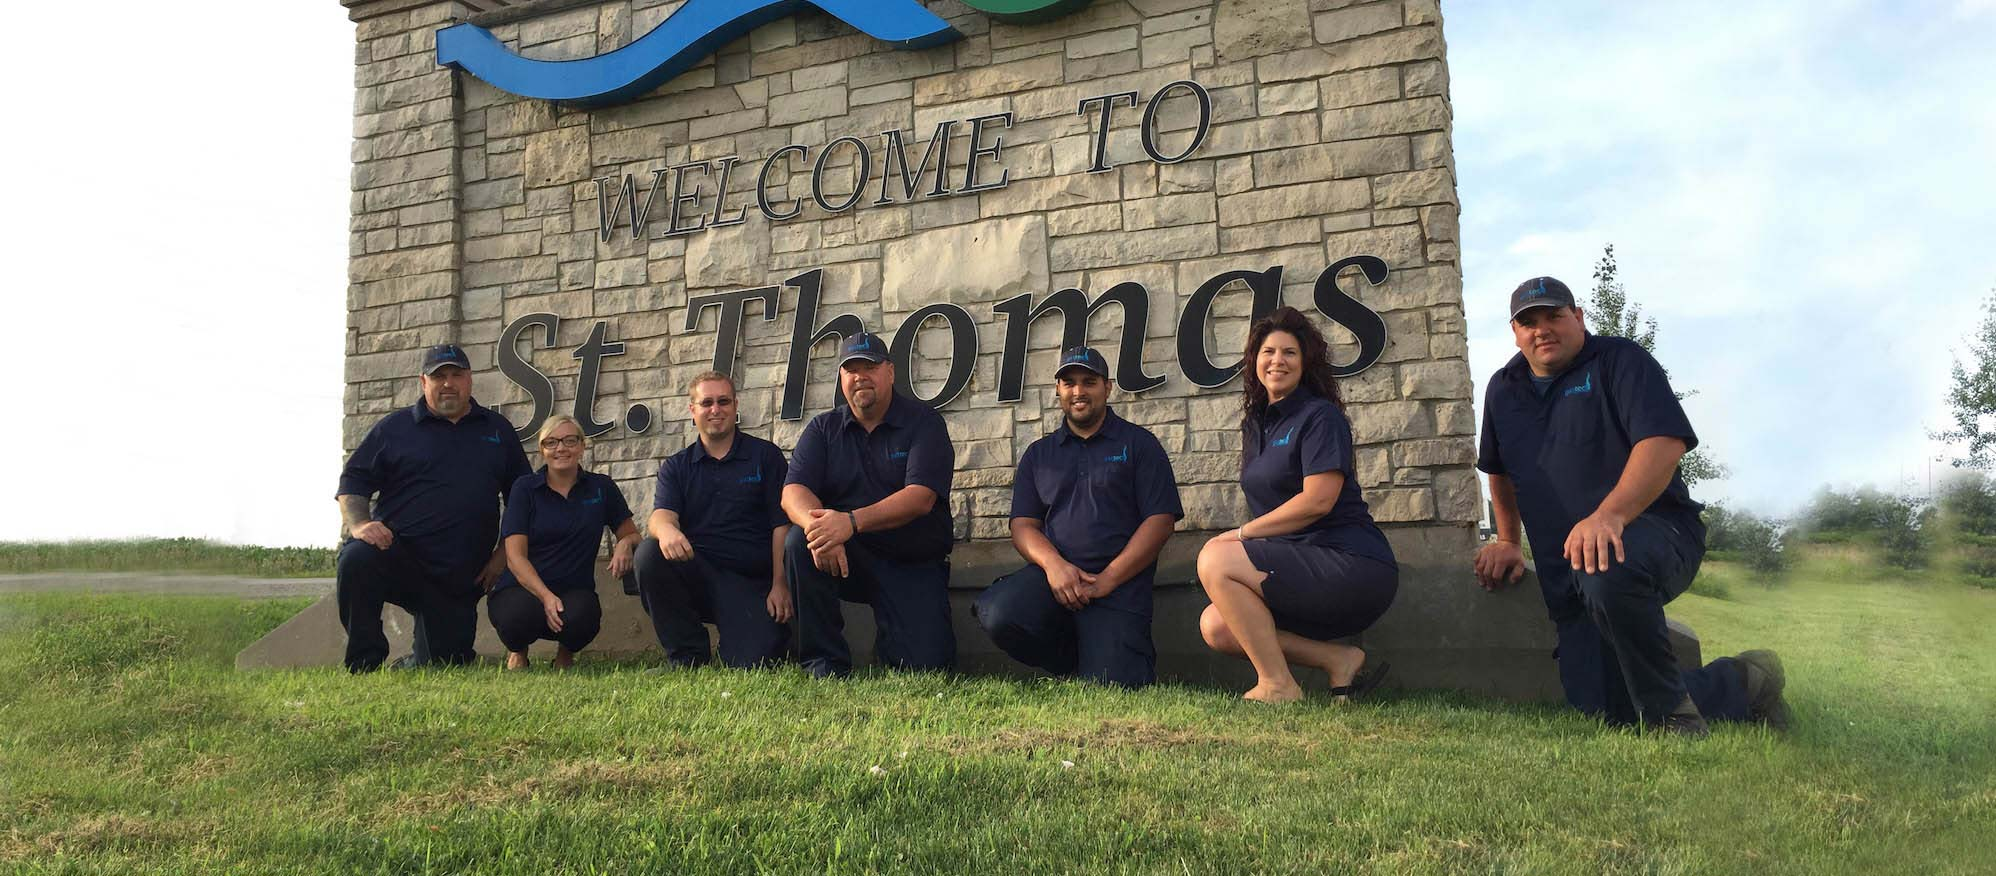 Gastech Solutions heating and cooling in st thomas ontario #stthomasproud